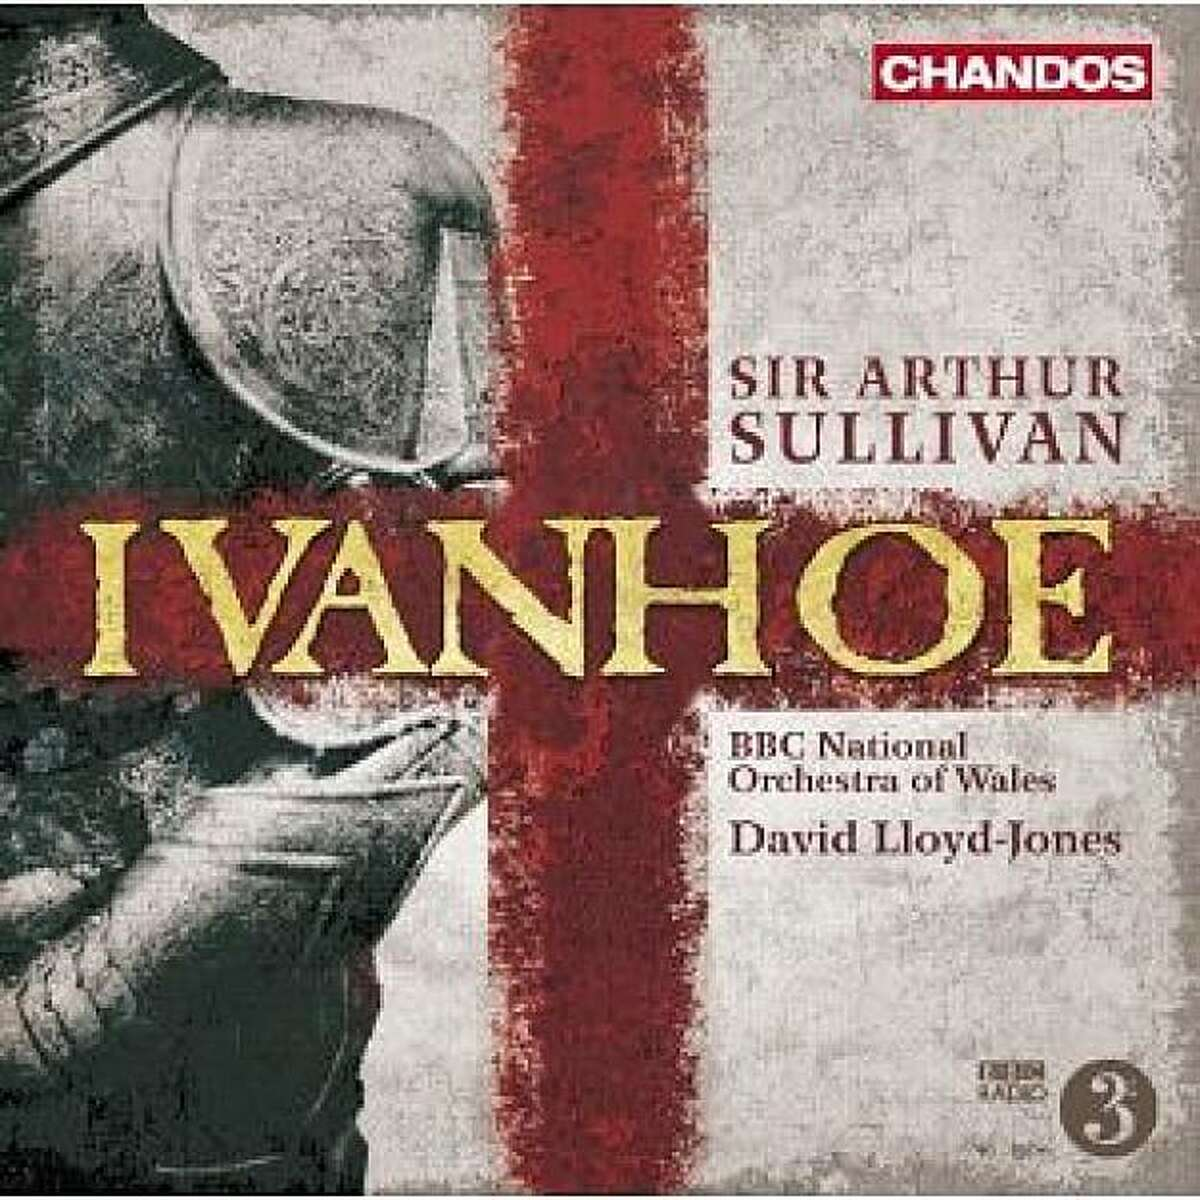 IVANHOE performed by the BBC National Orchestra of Wales